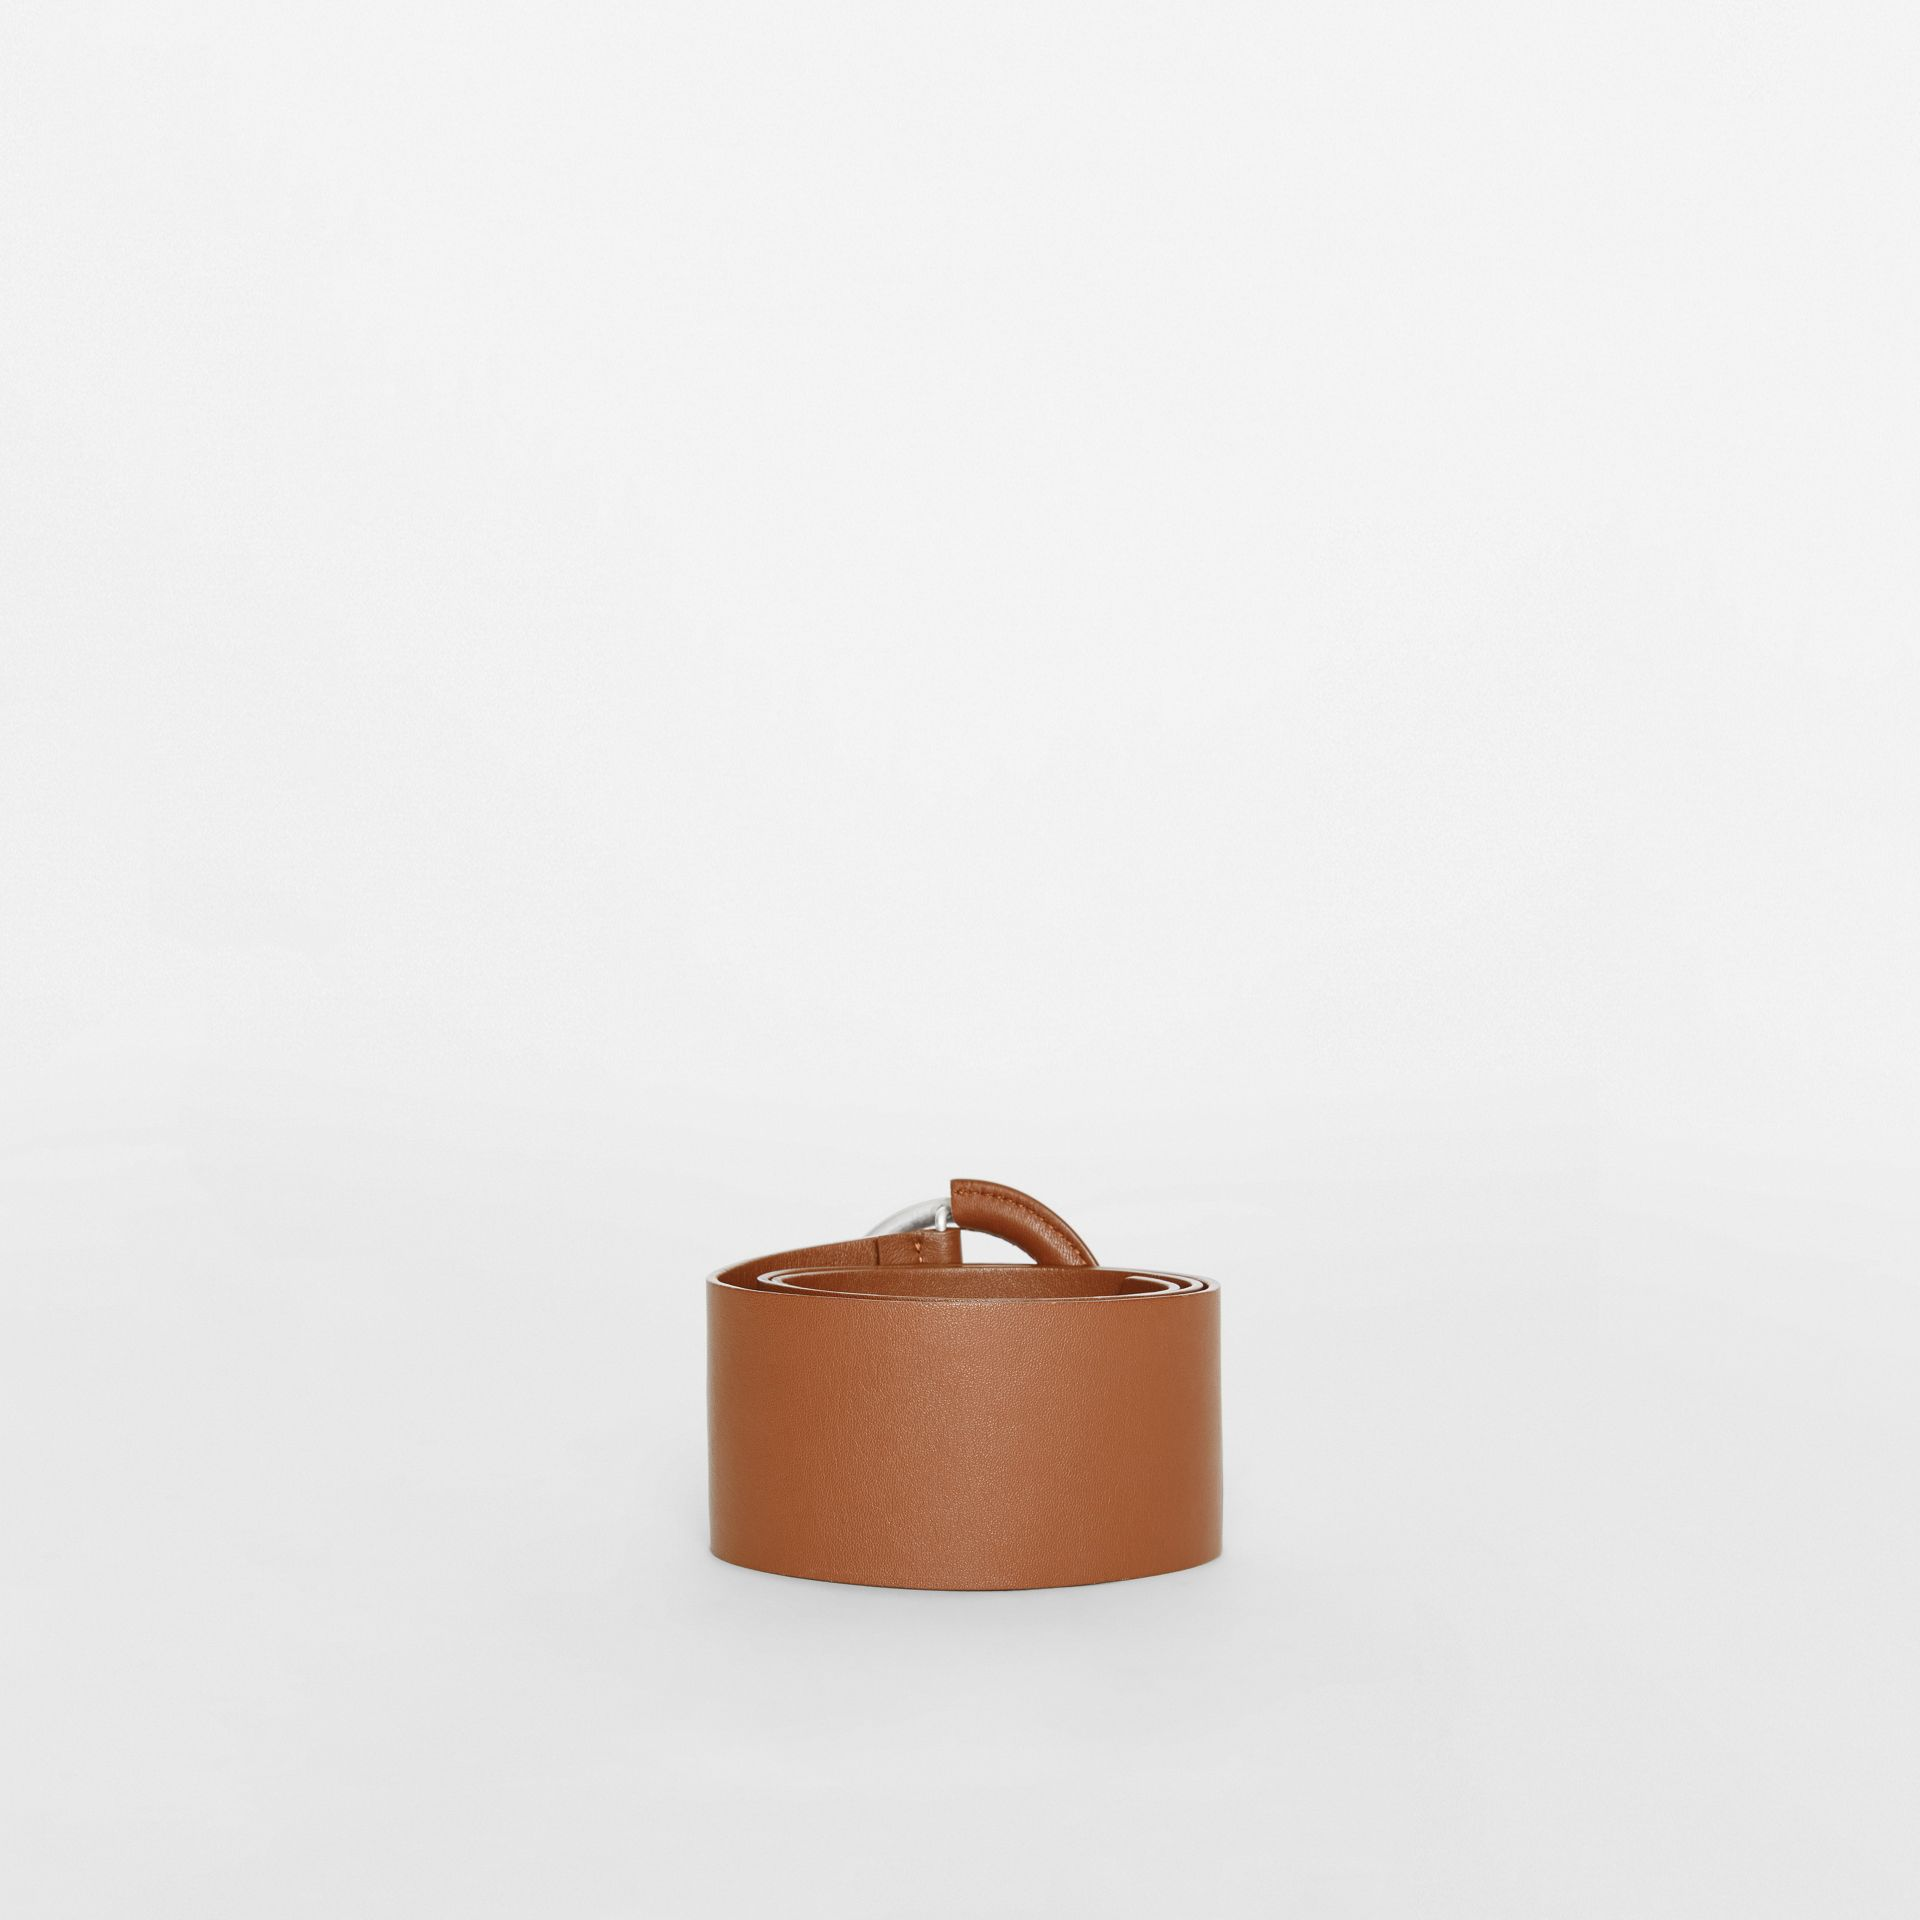 Round Buckle Leather Belt in Tan - Women | Burberry - gallery image 3